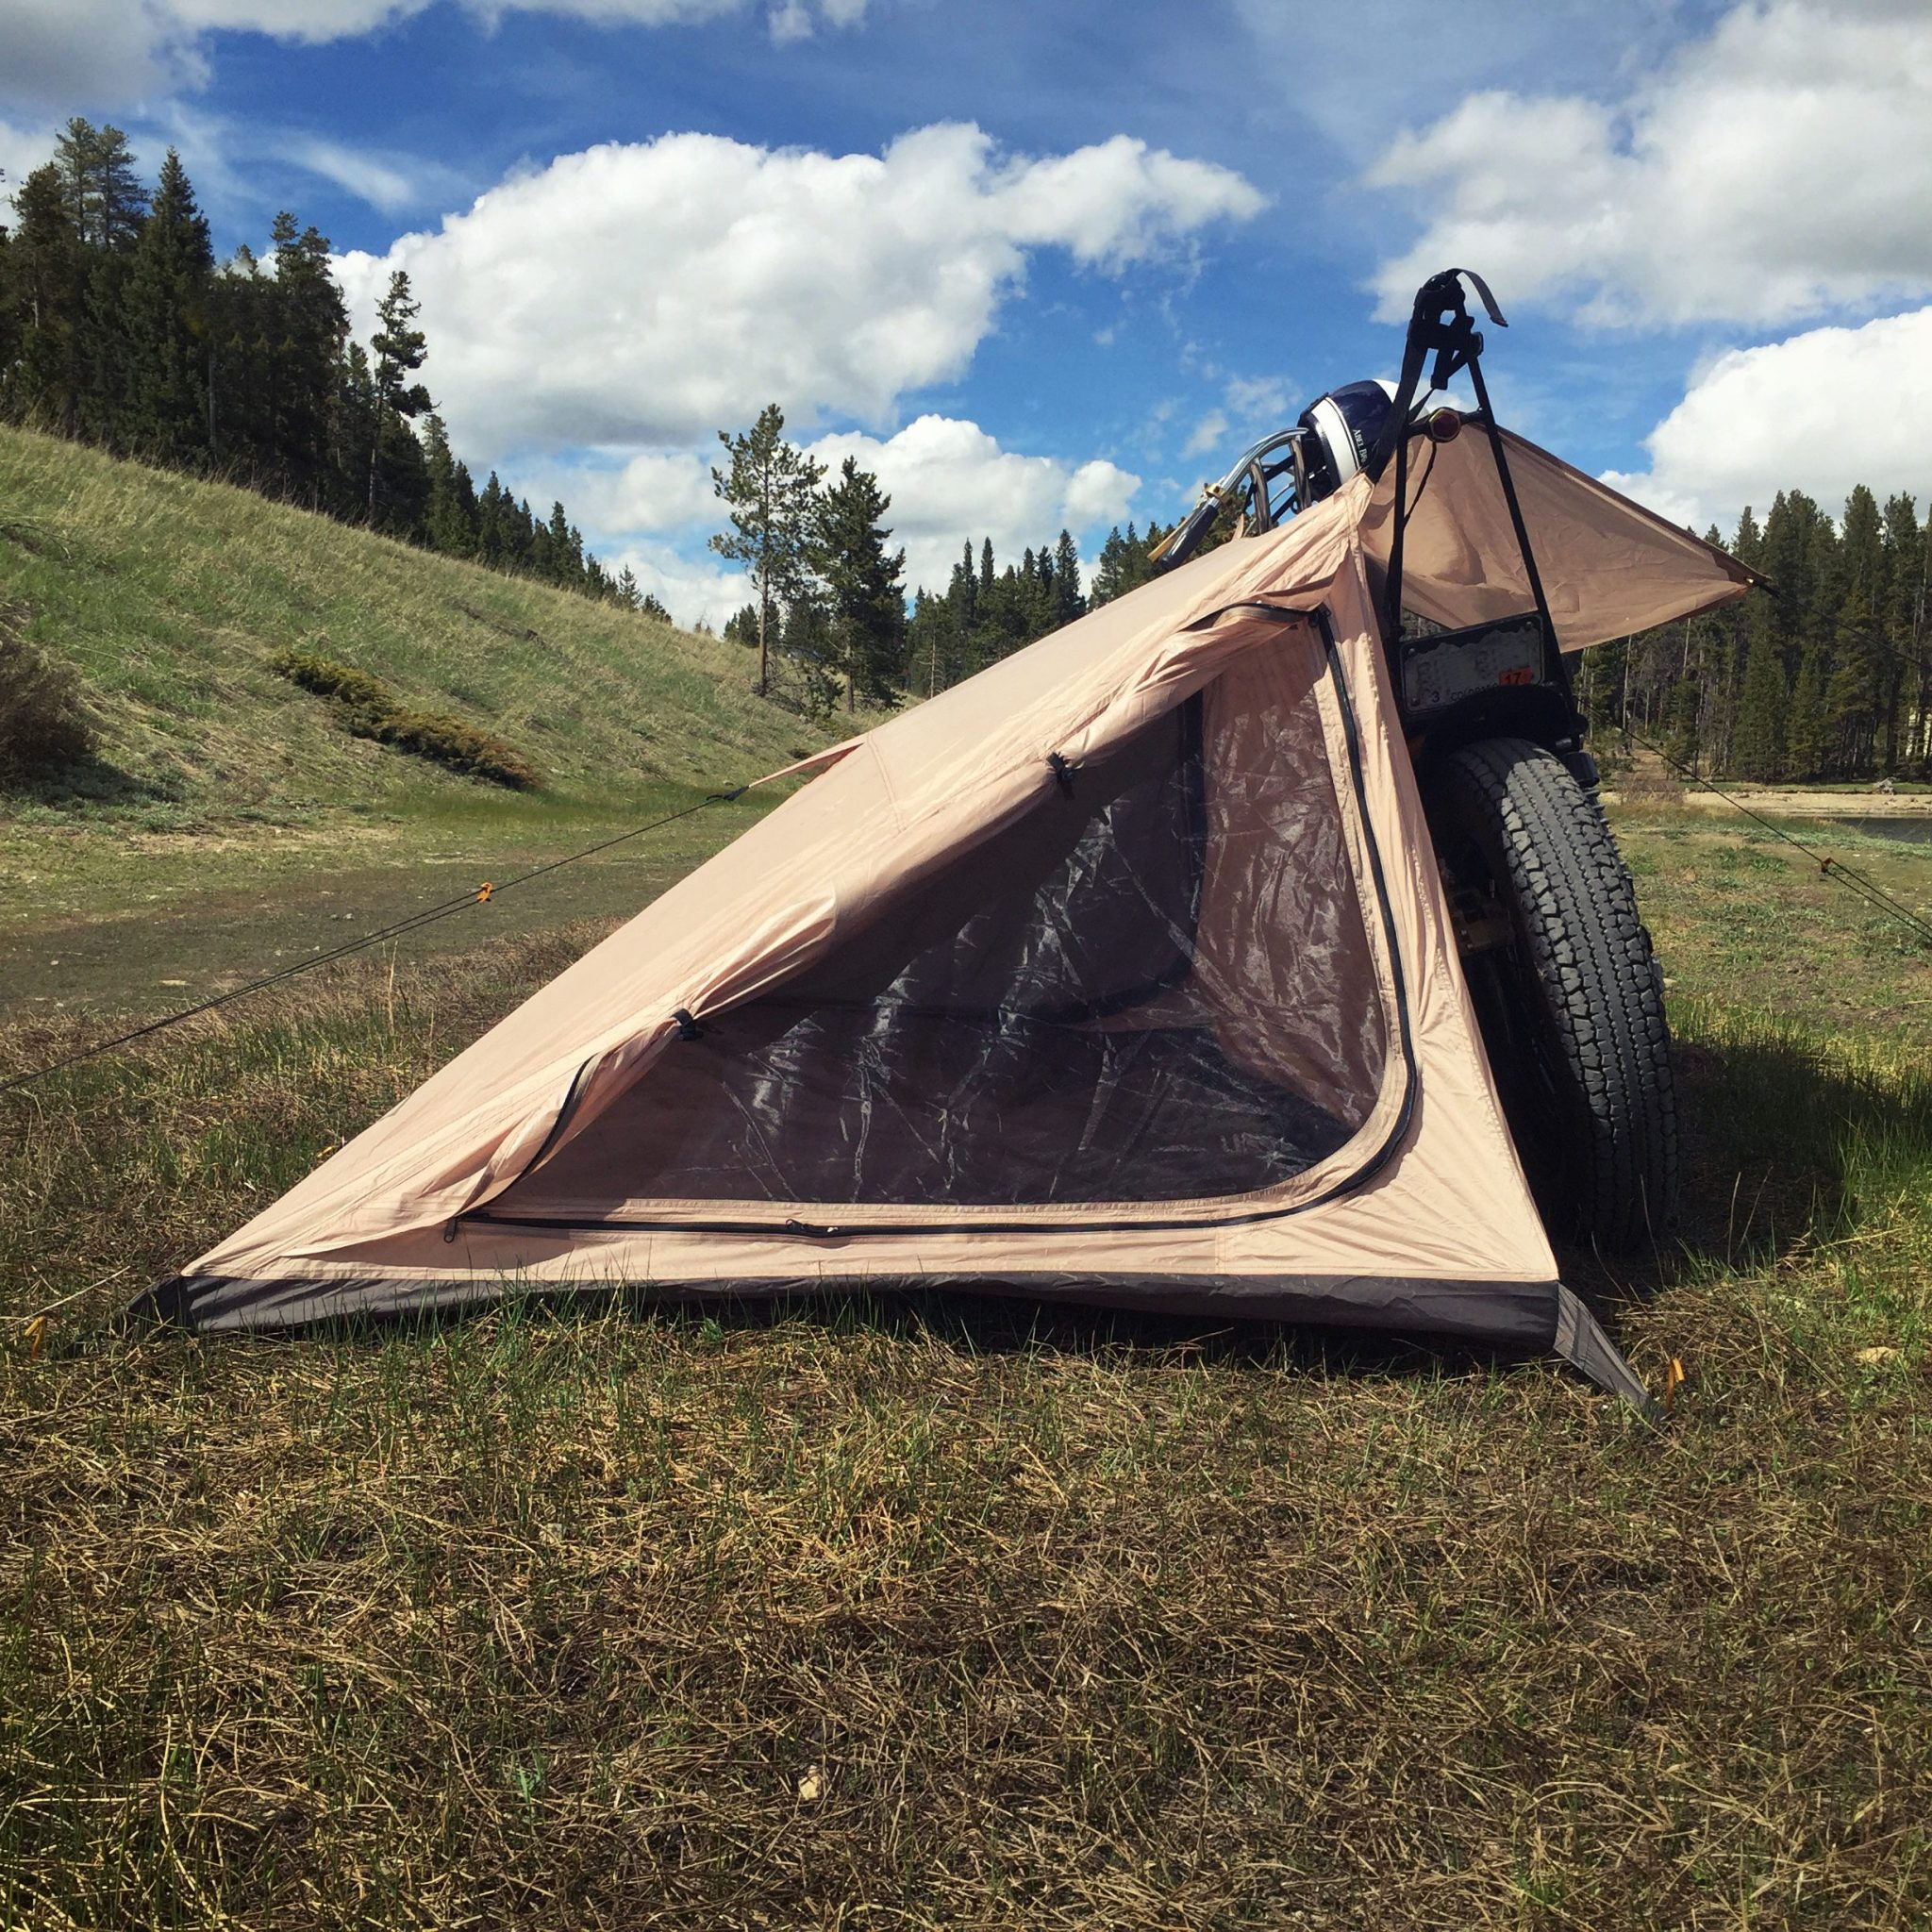 nomad-motorcycle-c&-tent-2 & Nomad 2 Motorcycle Tent